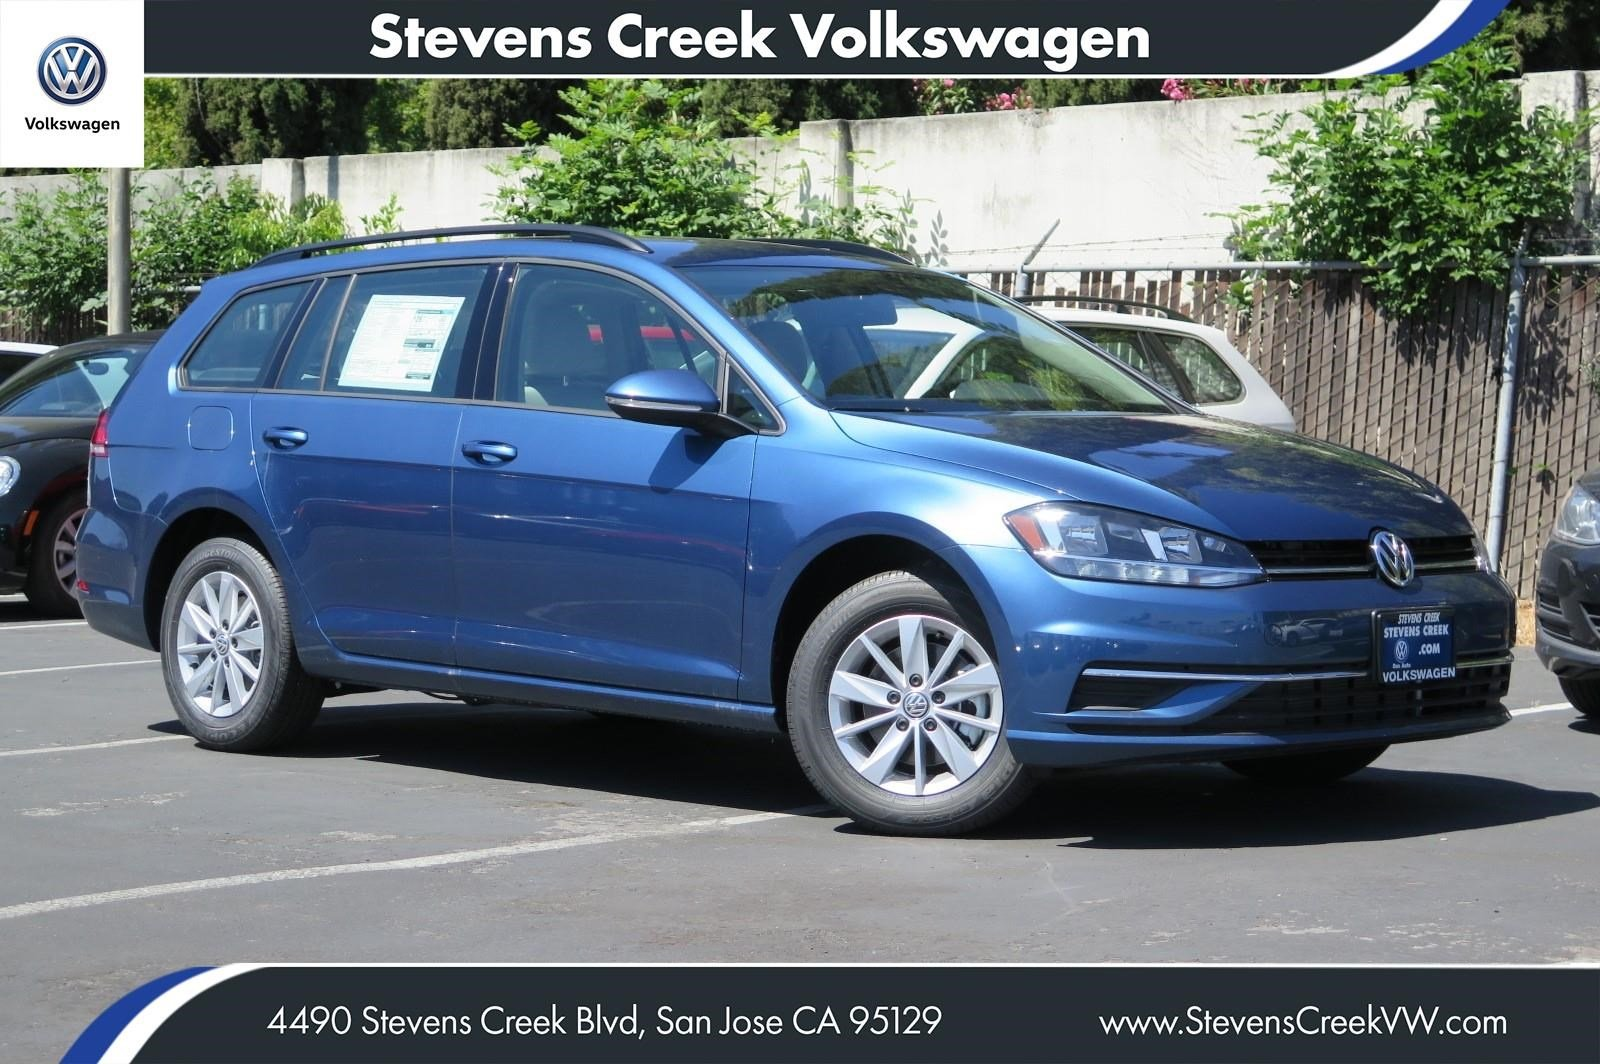 New 2018 Volkswagen Golf SportWagen S FWD Station Wagon VIN# JM763694 MSRP $23,990